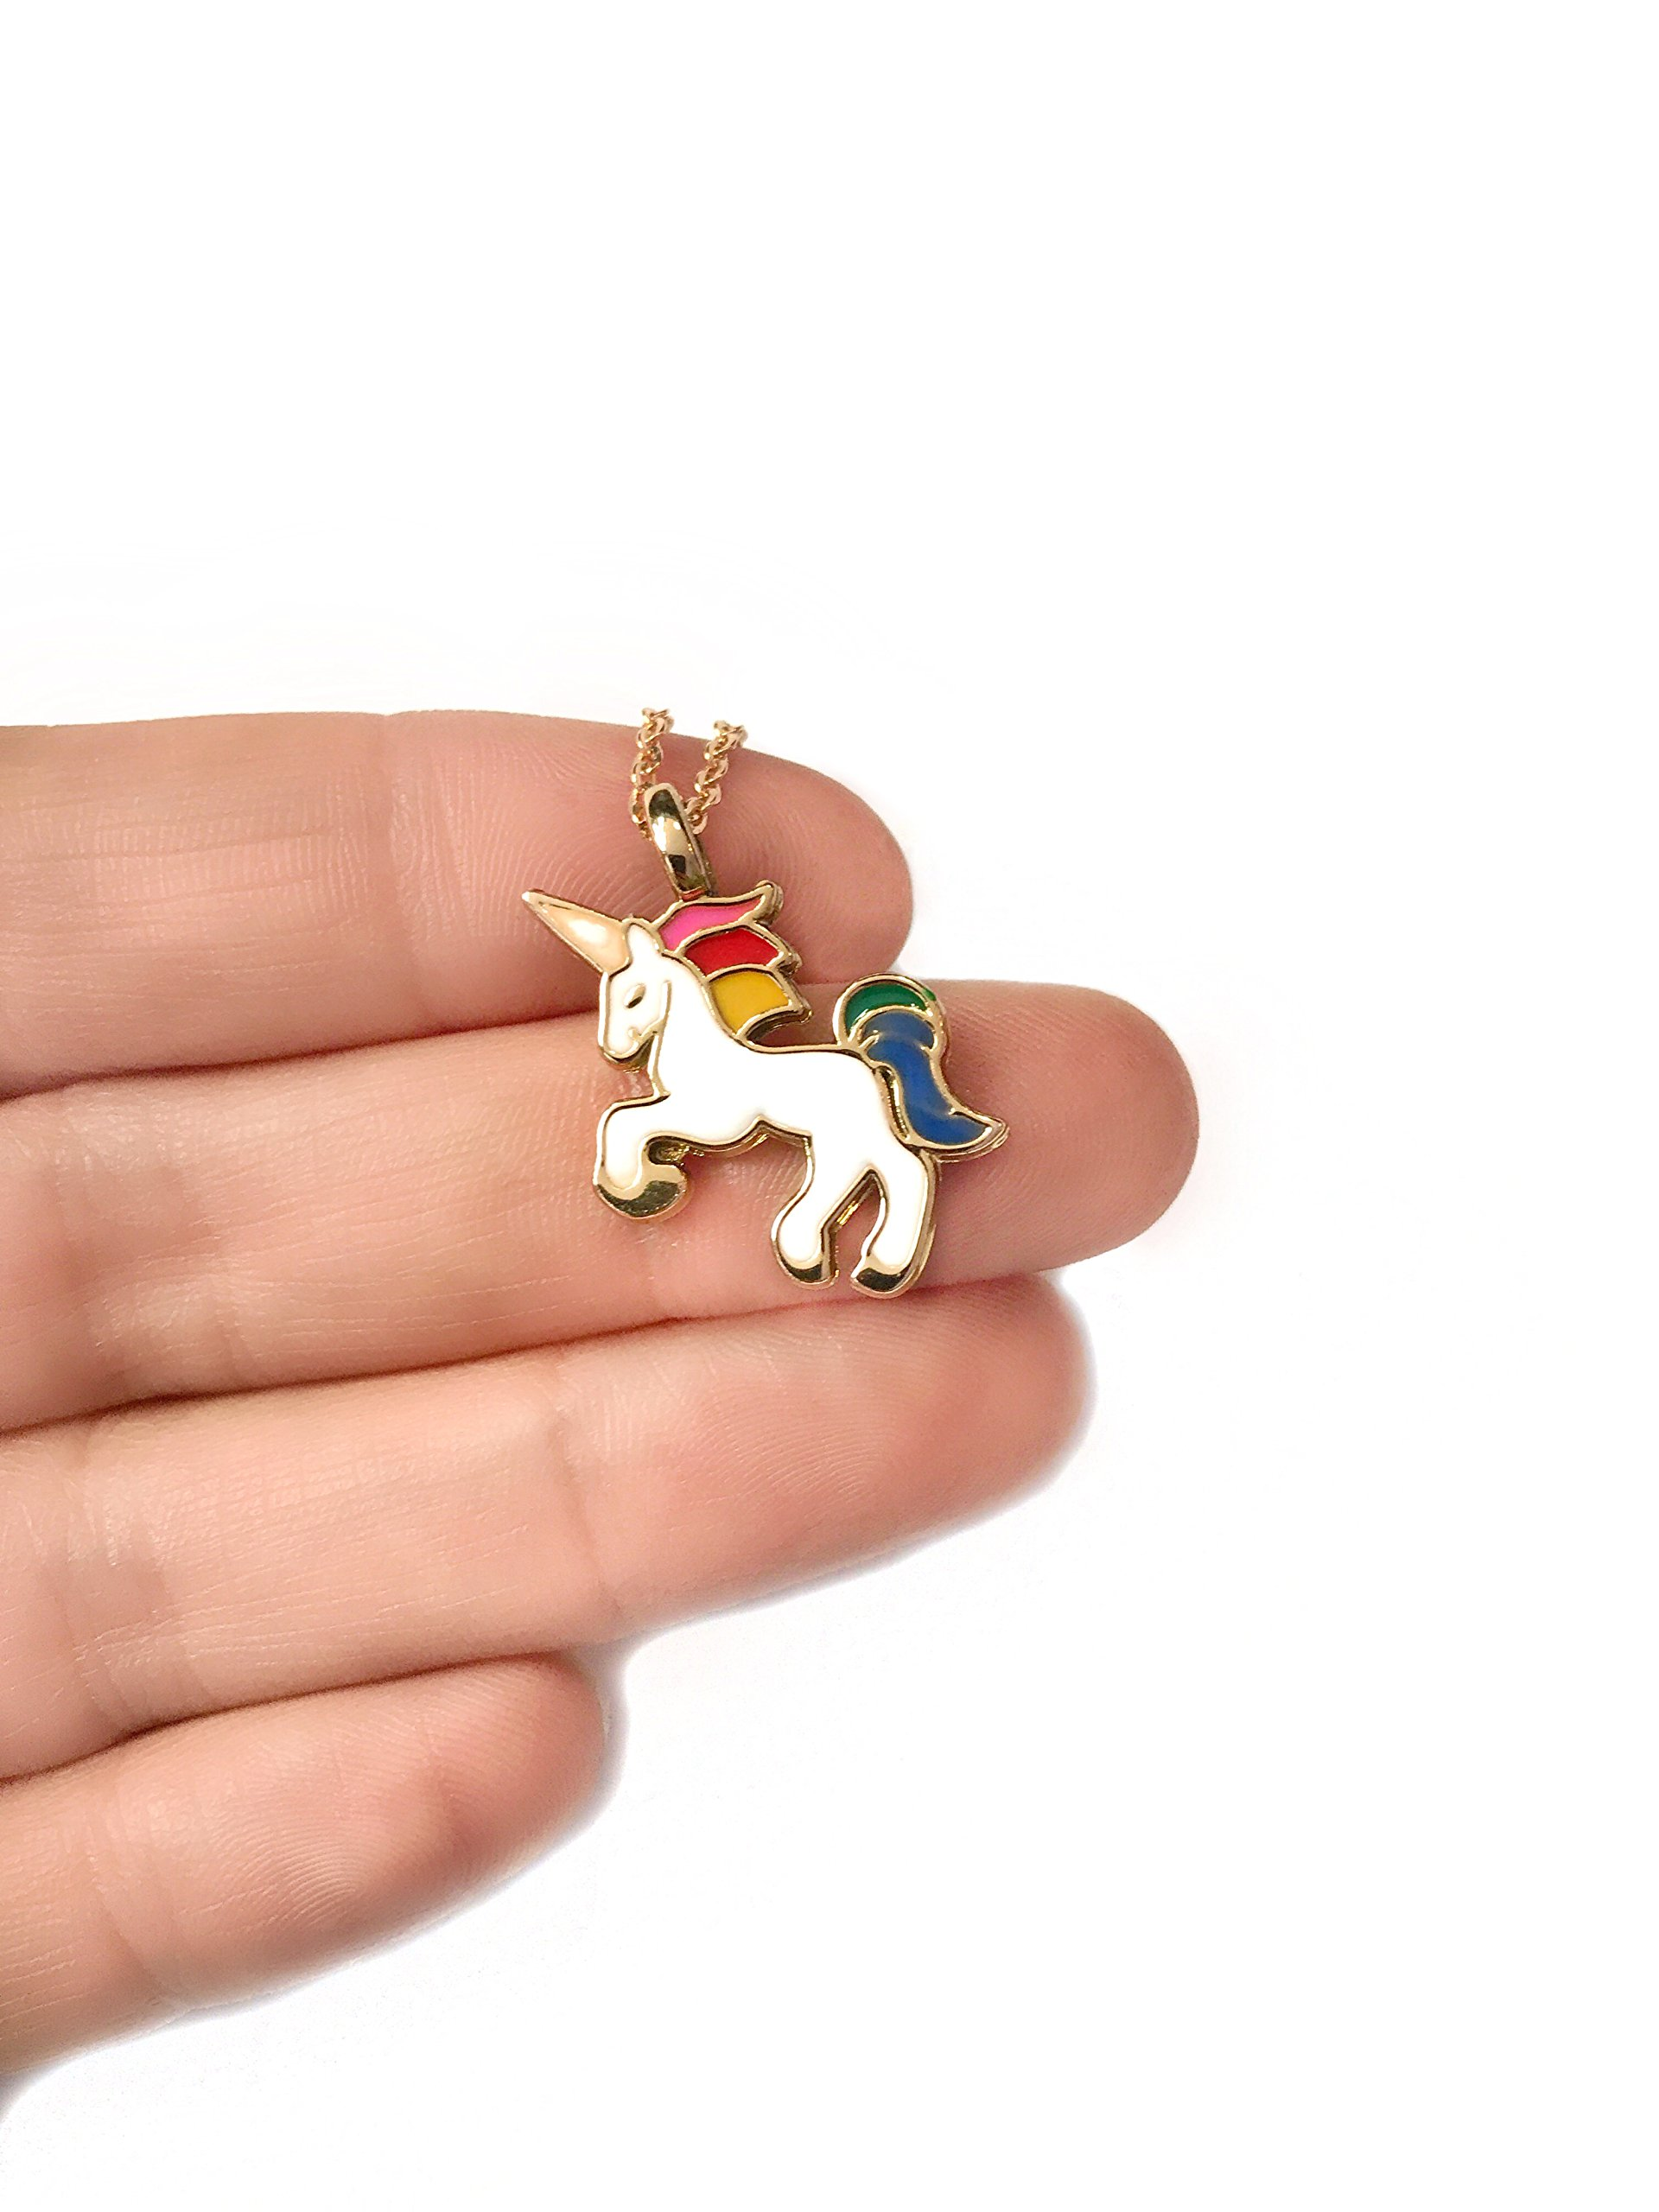 Altitude Boutique Unicorn Necklace Magical Pendant Gift for Girls or for Women Gold Silver Colorful Enamel 4